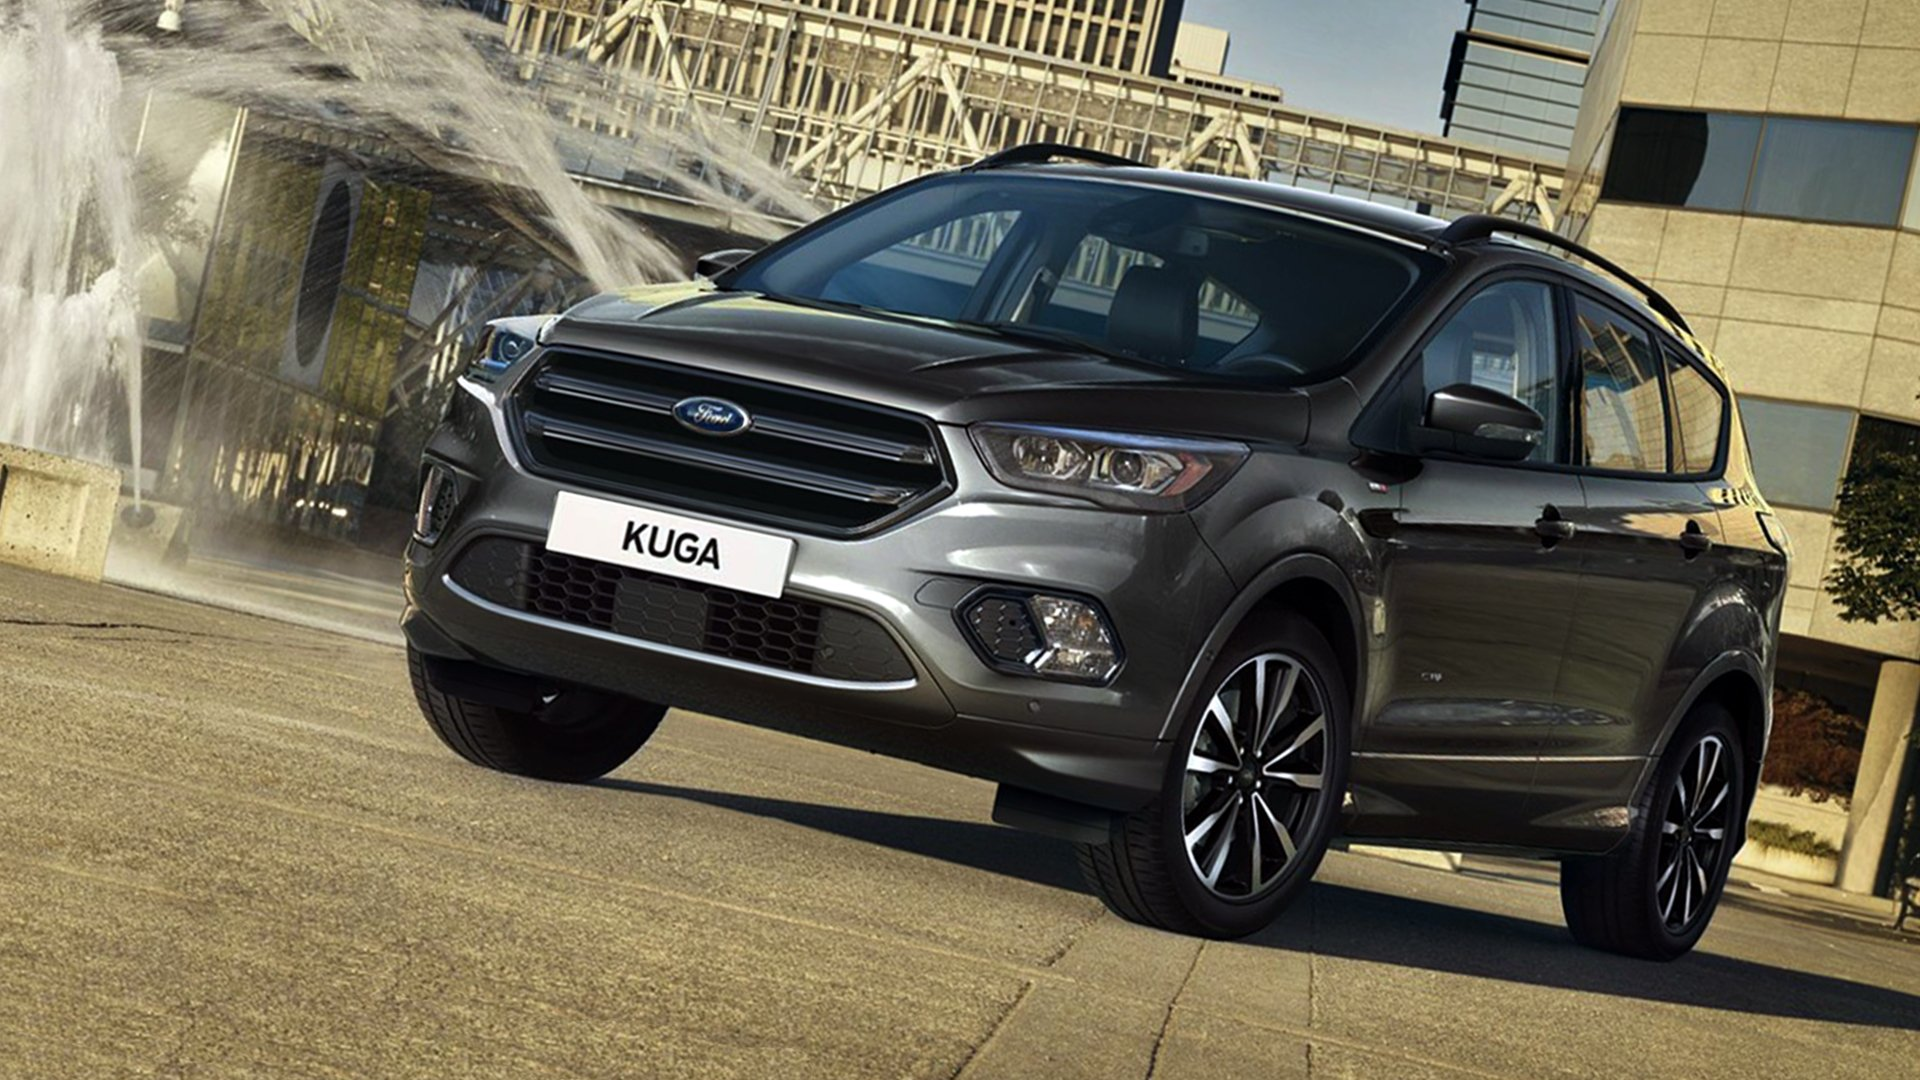 Concept Ford Kuga 2019 HD